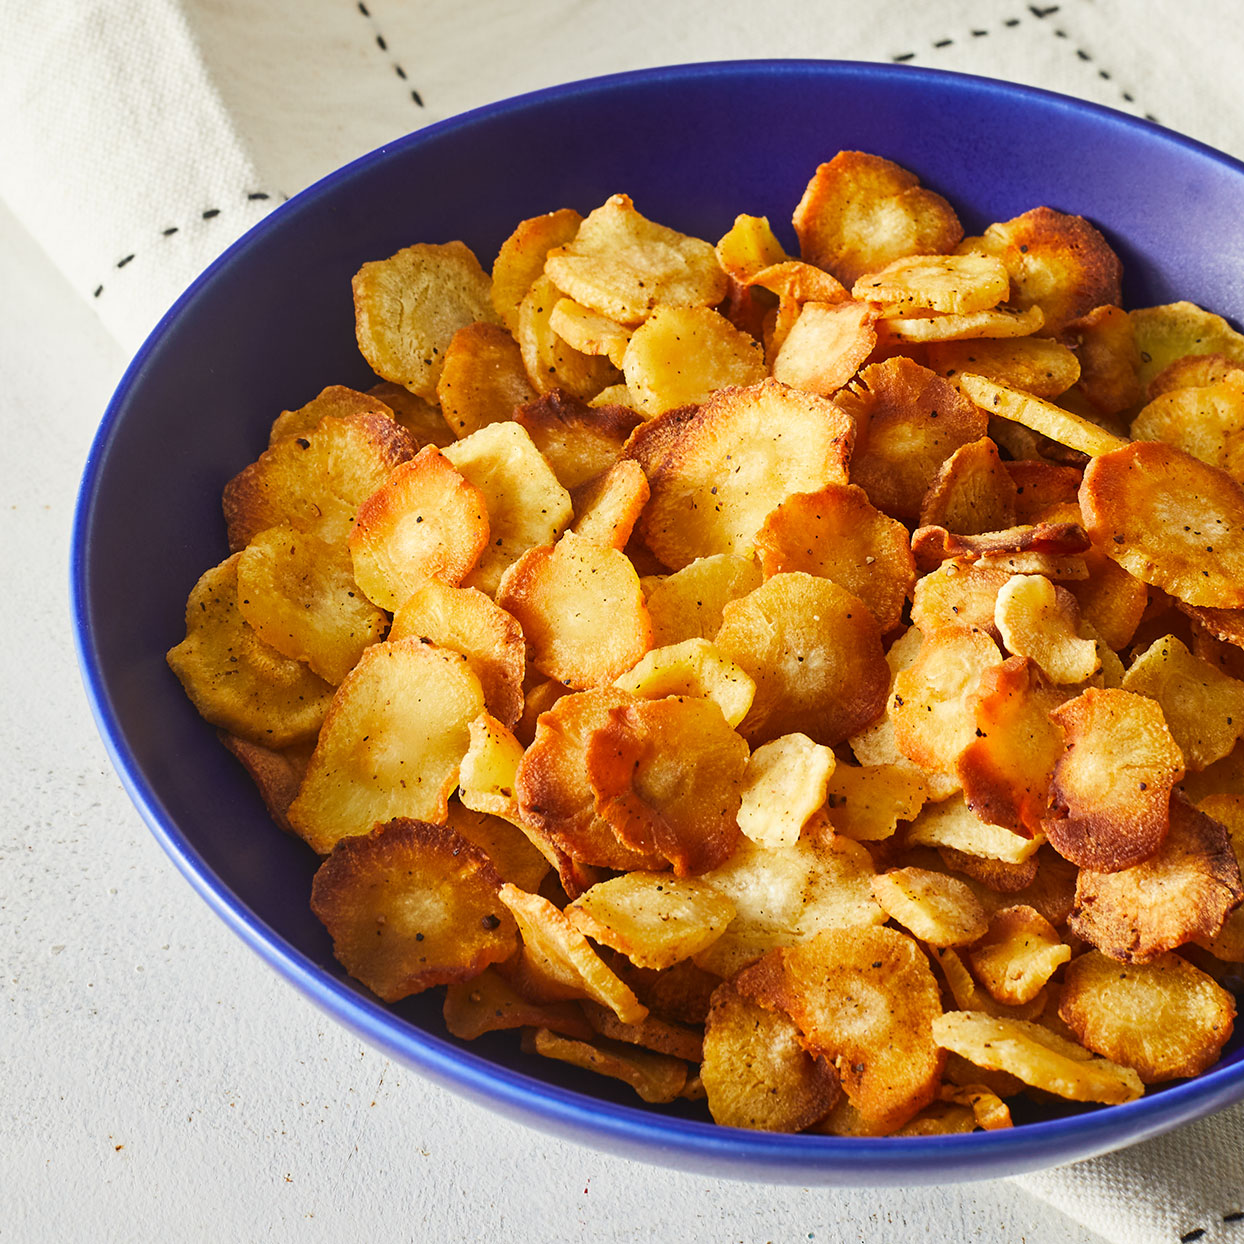 Baked Parsnip Chips Trusted Brands